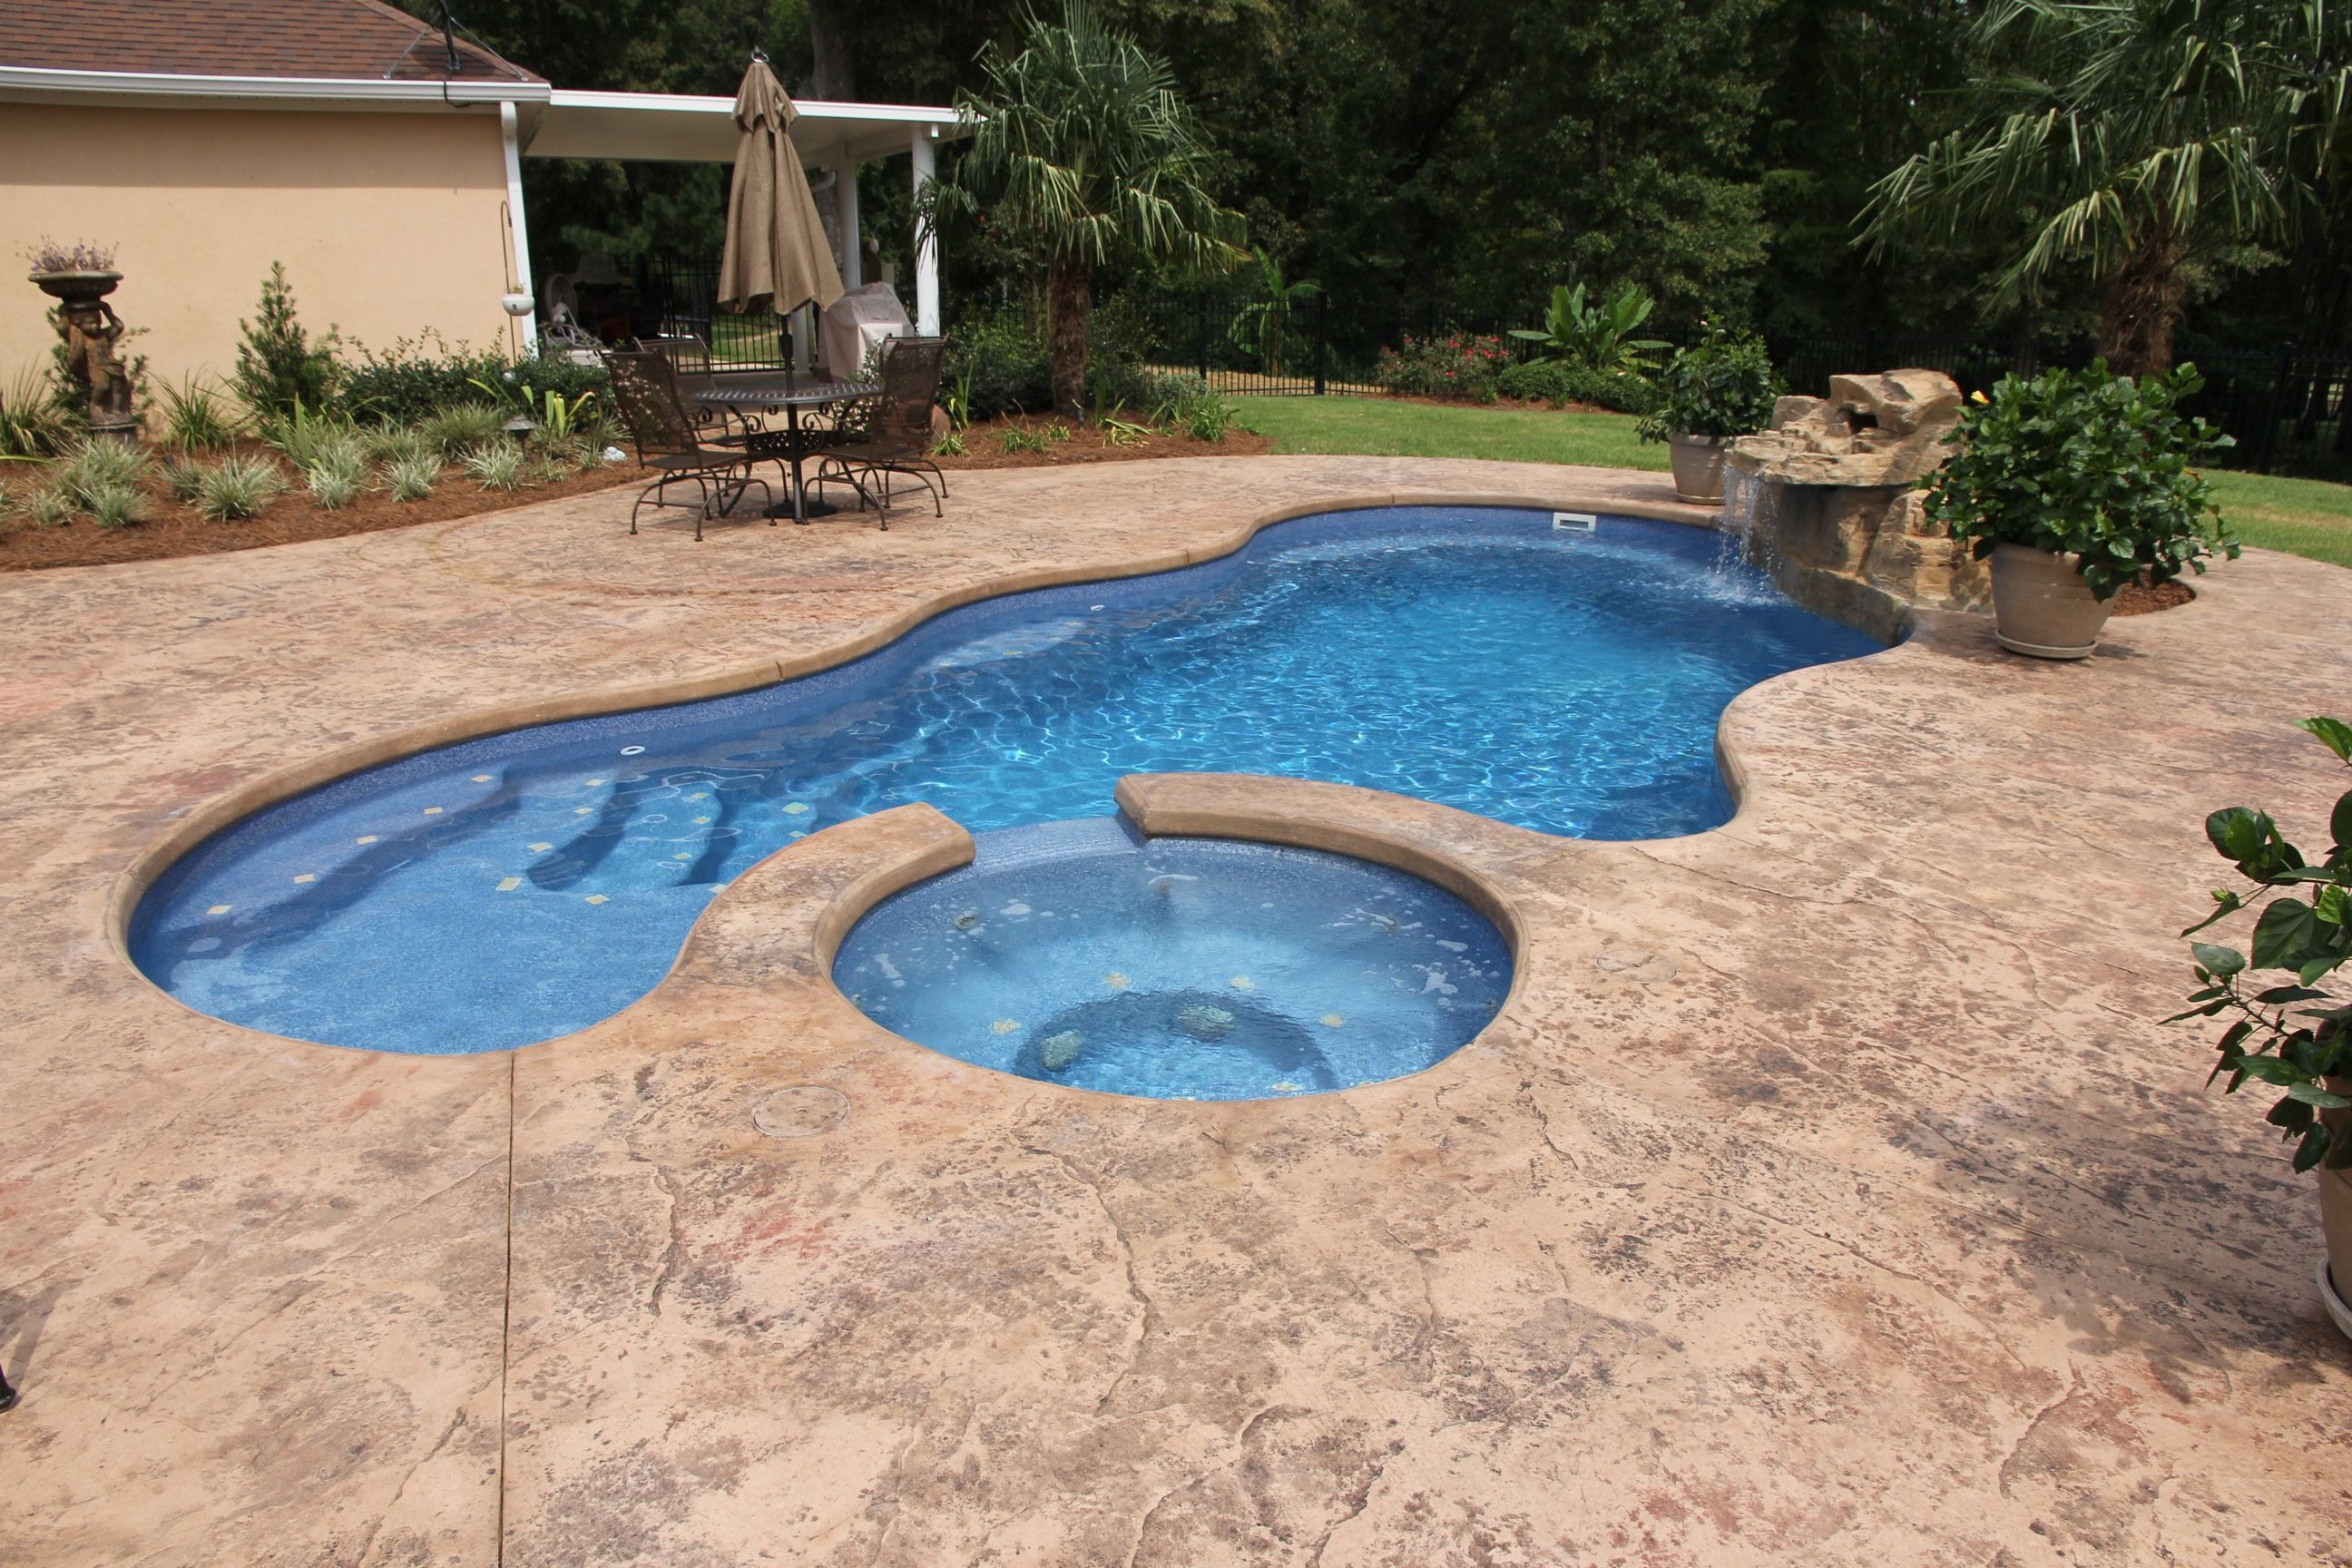 Viking Fibergl Pools By Dolphin Of West Monroe Rico Rock Waterfall Spa R Manufactured Trilogy